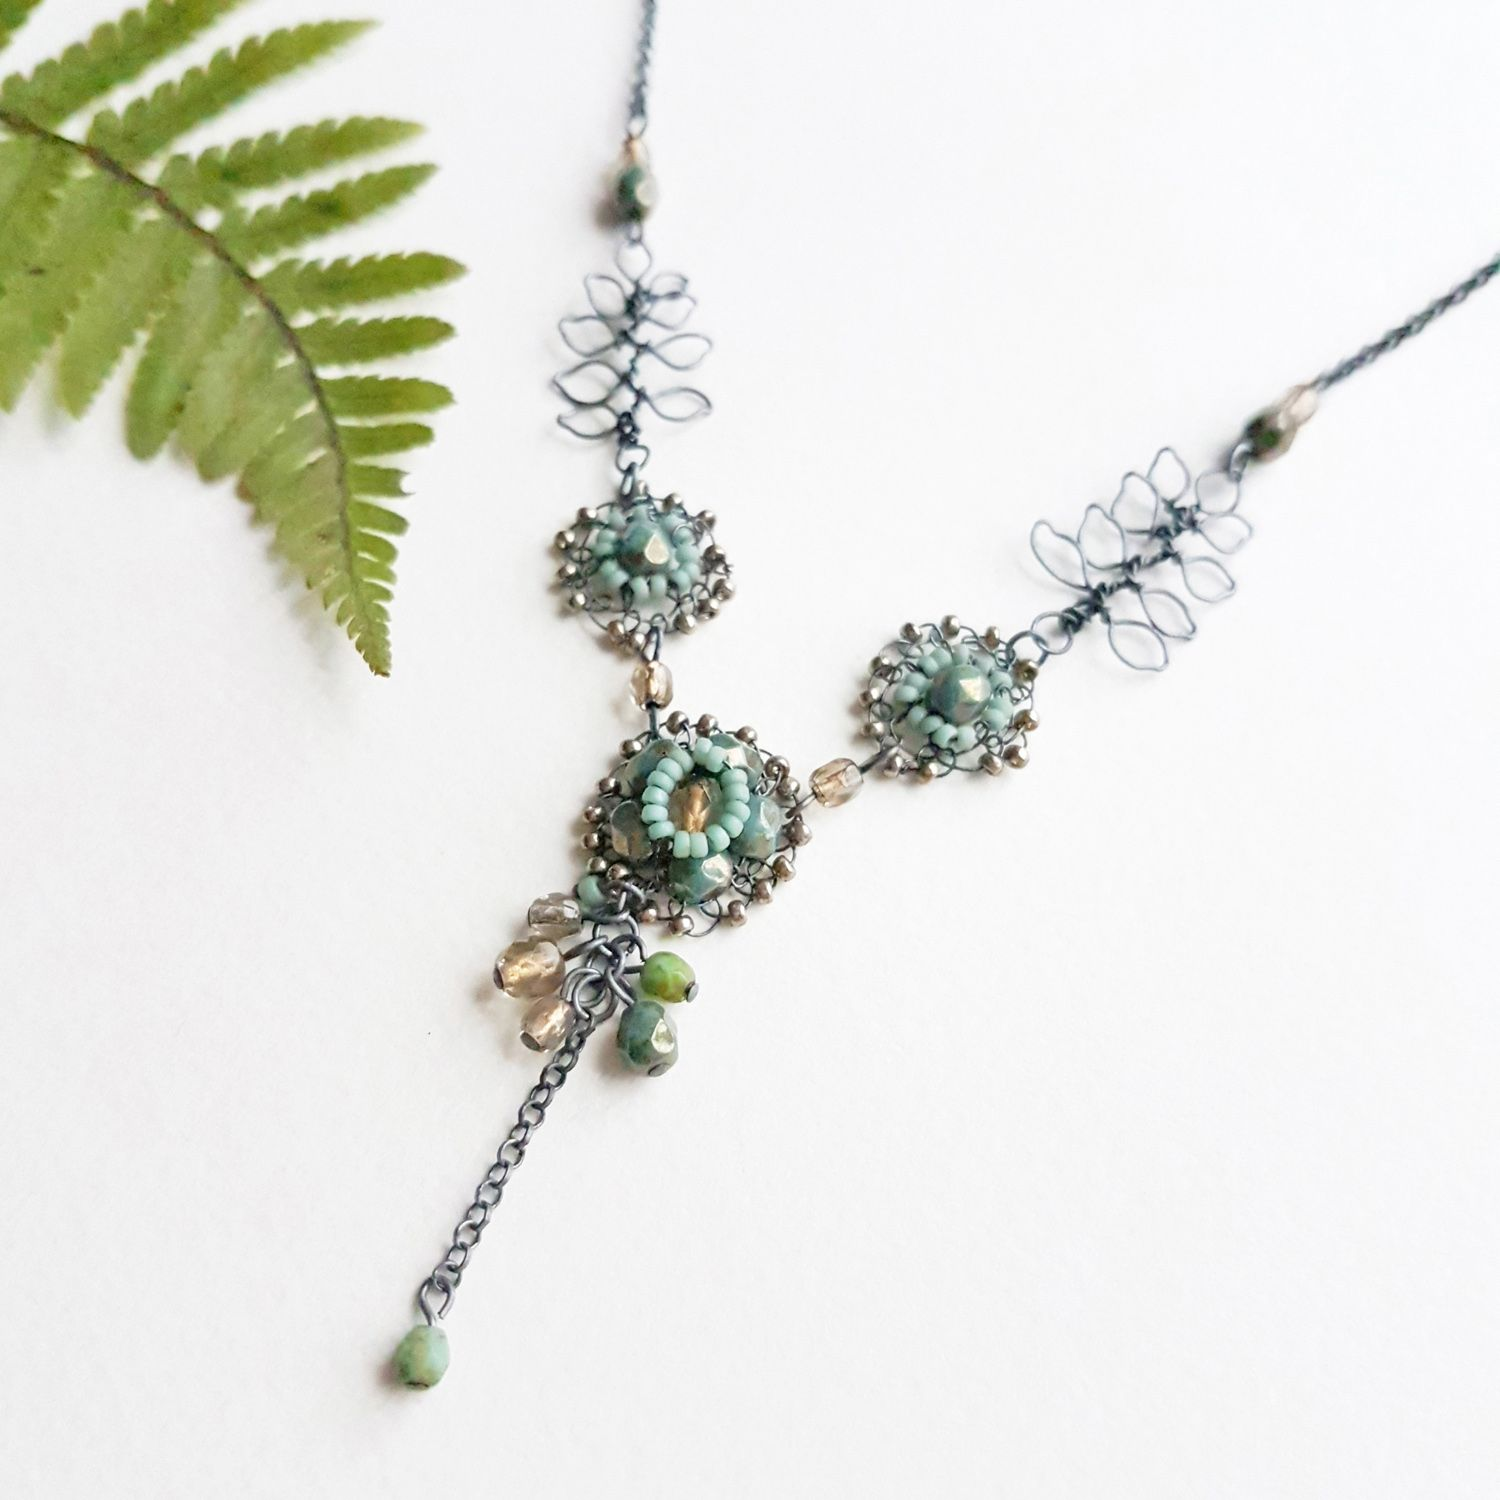 Flower & Leaf necklace